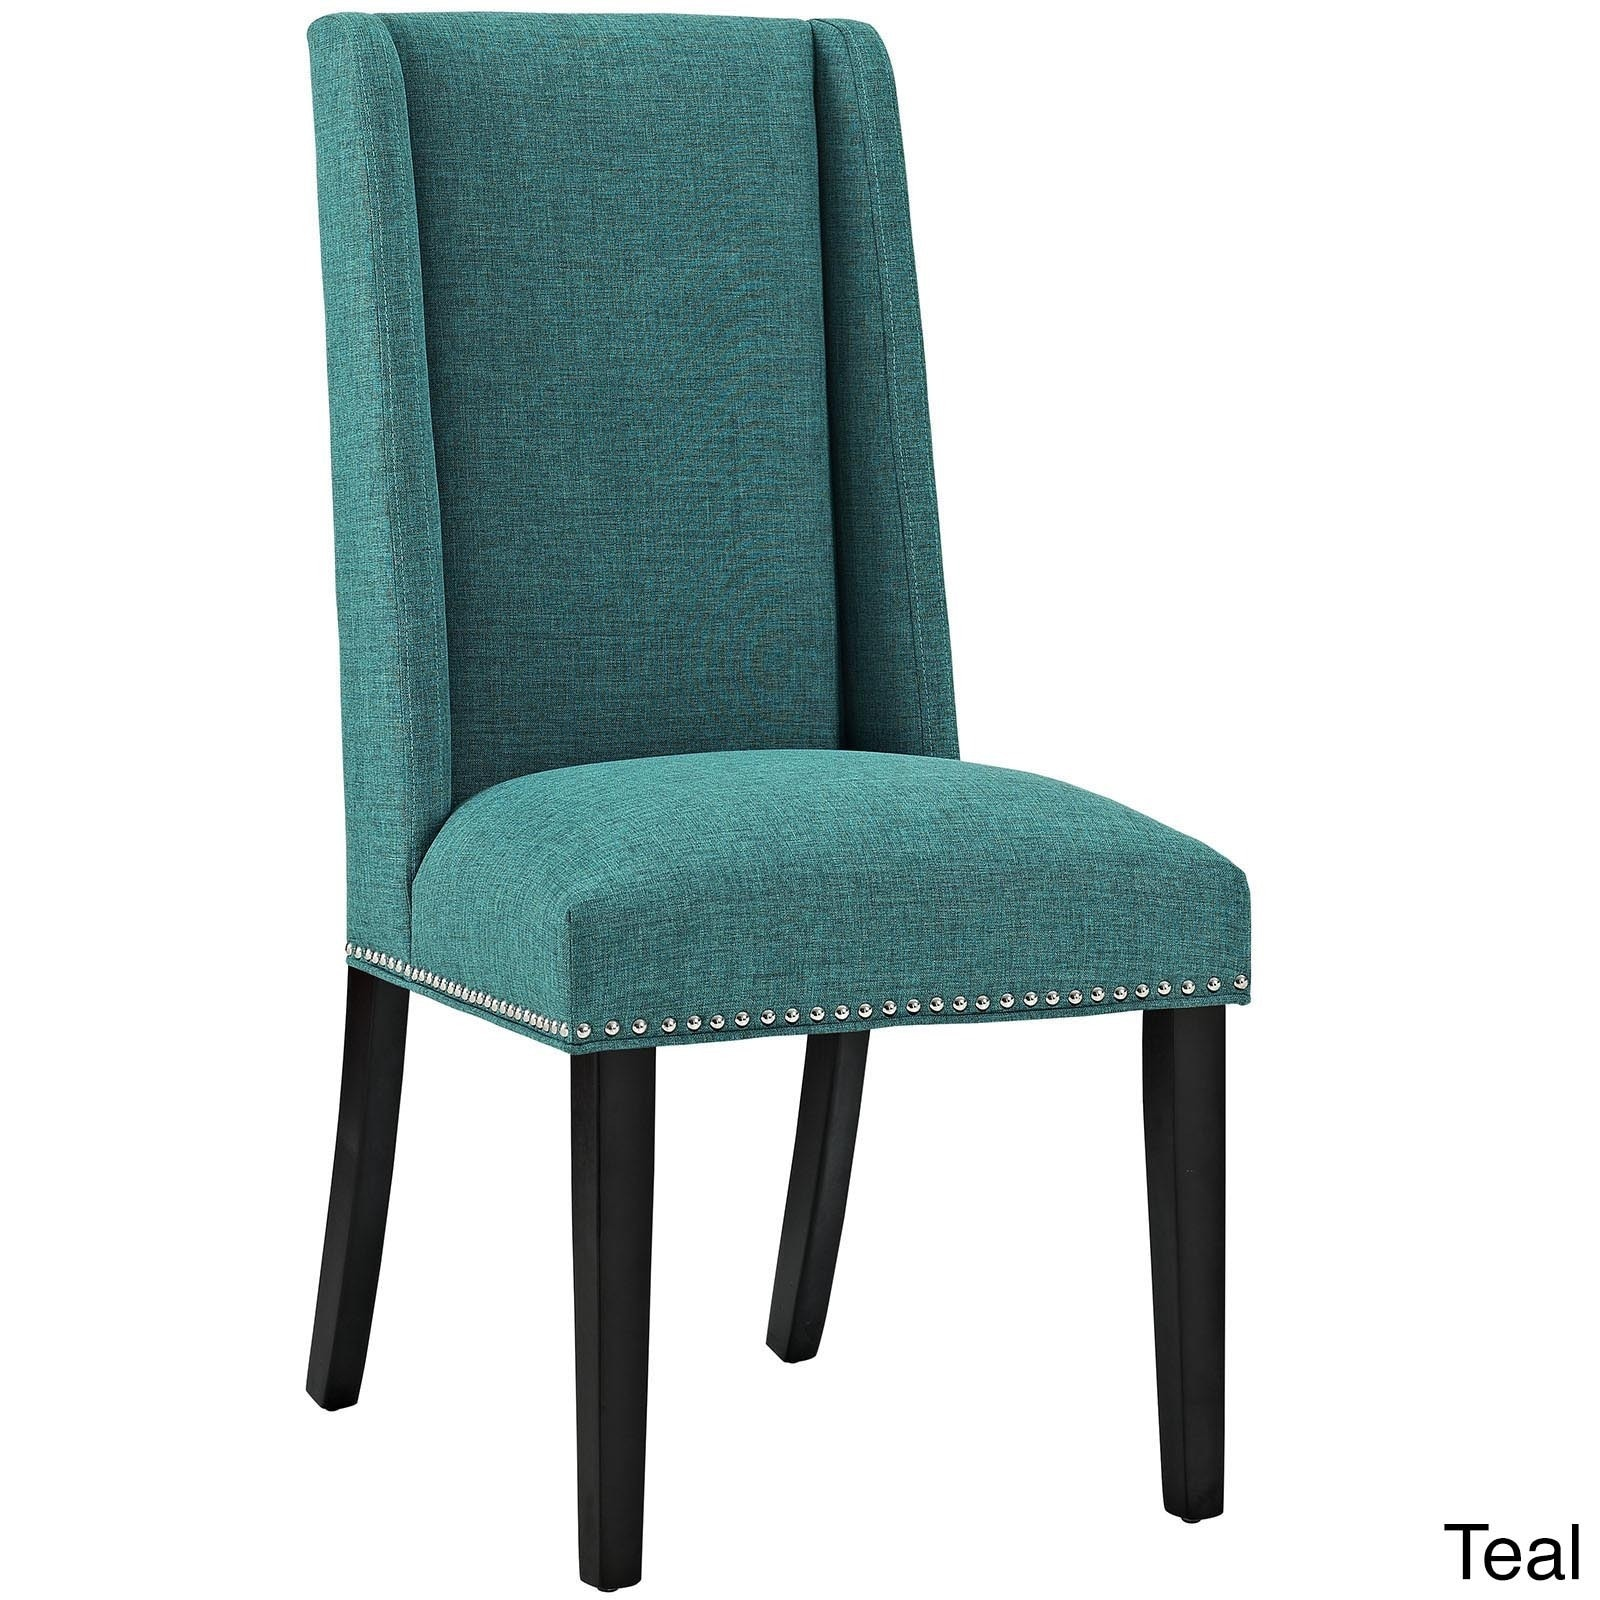 Laurel Creek Kitchen & Dining Room Chairs For Less | Overstock